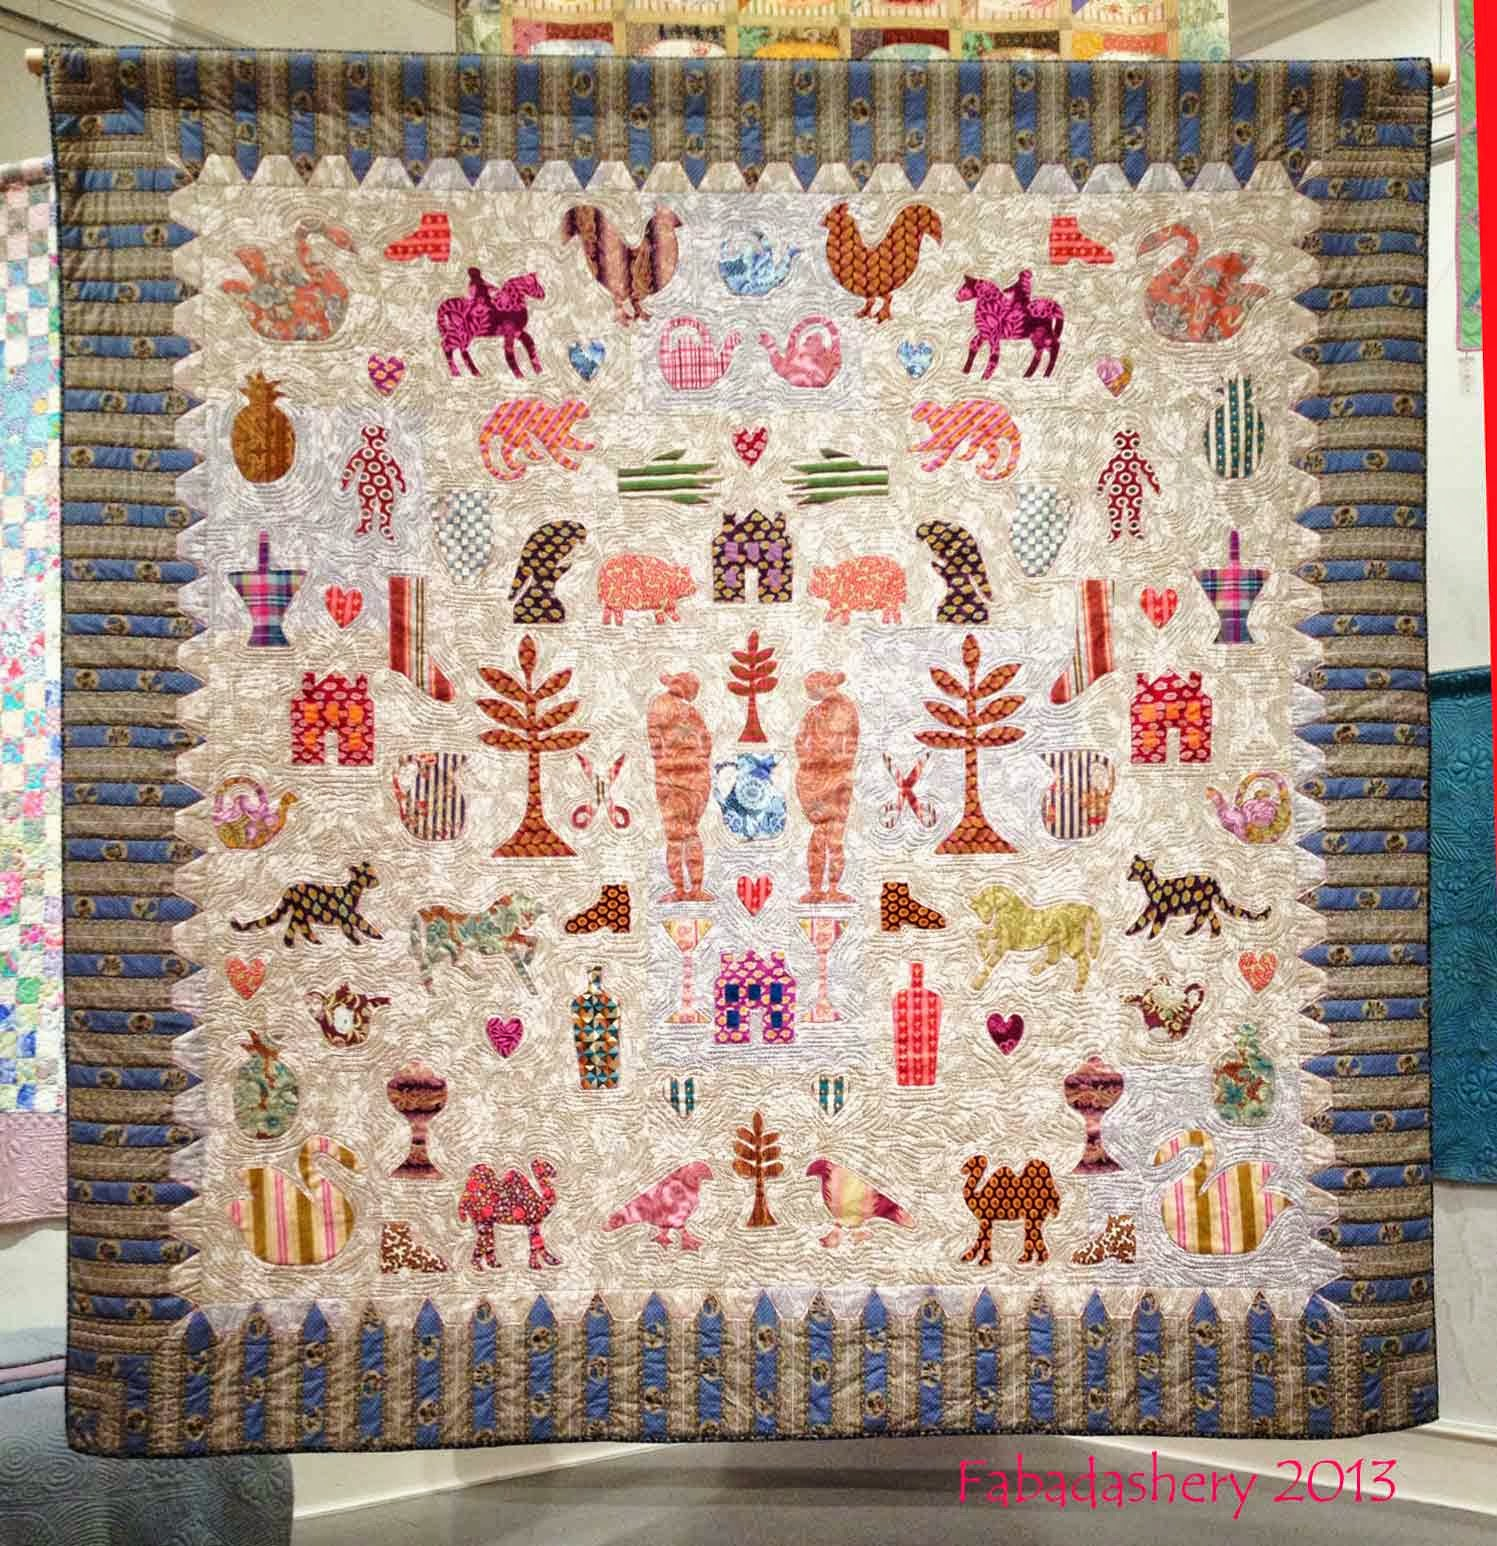 Fabadashery Kaffe Fassett Comes To Wales Quilt